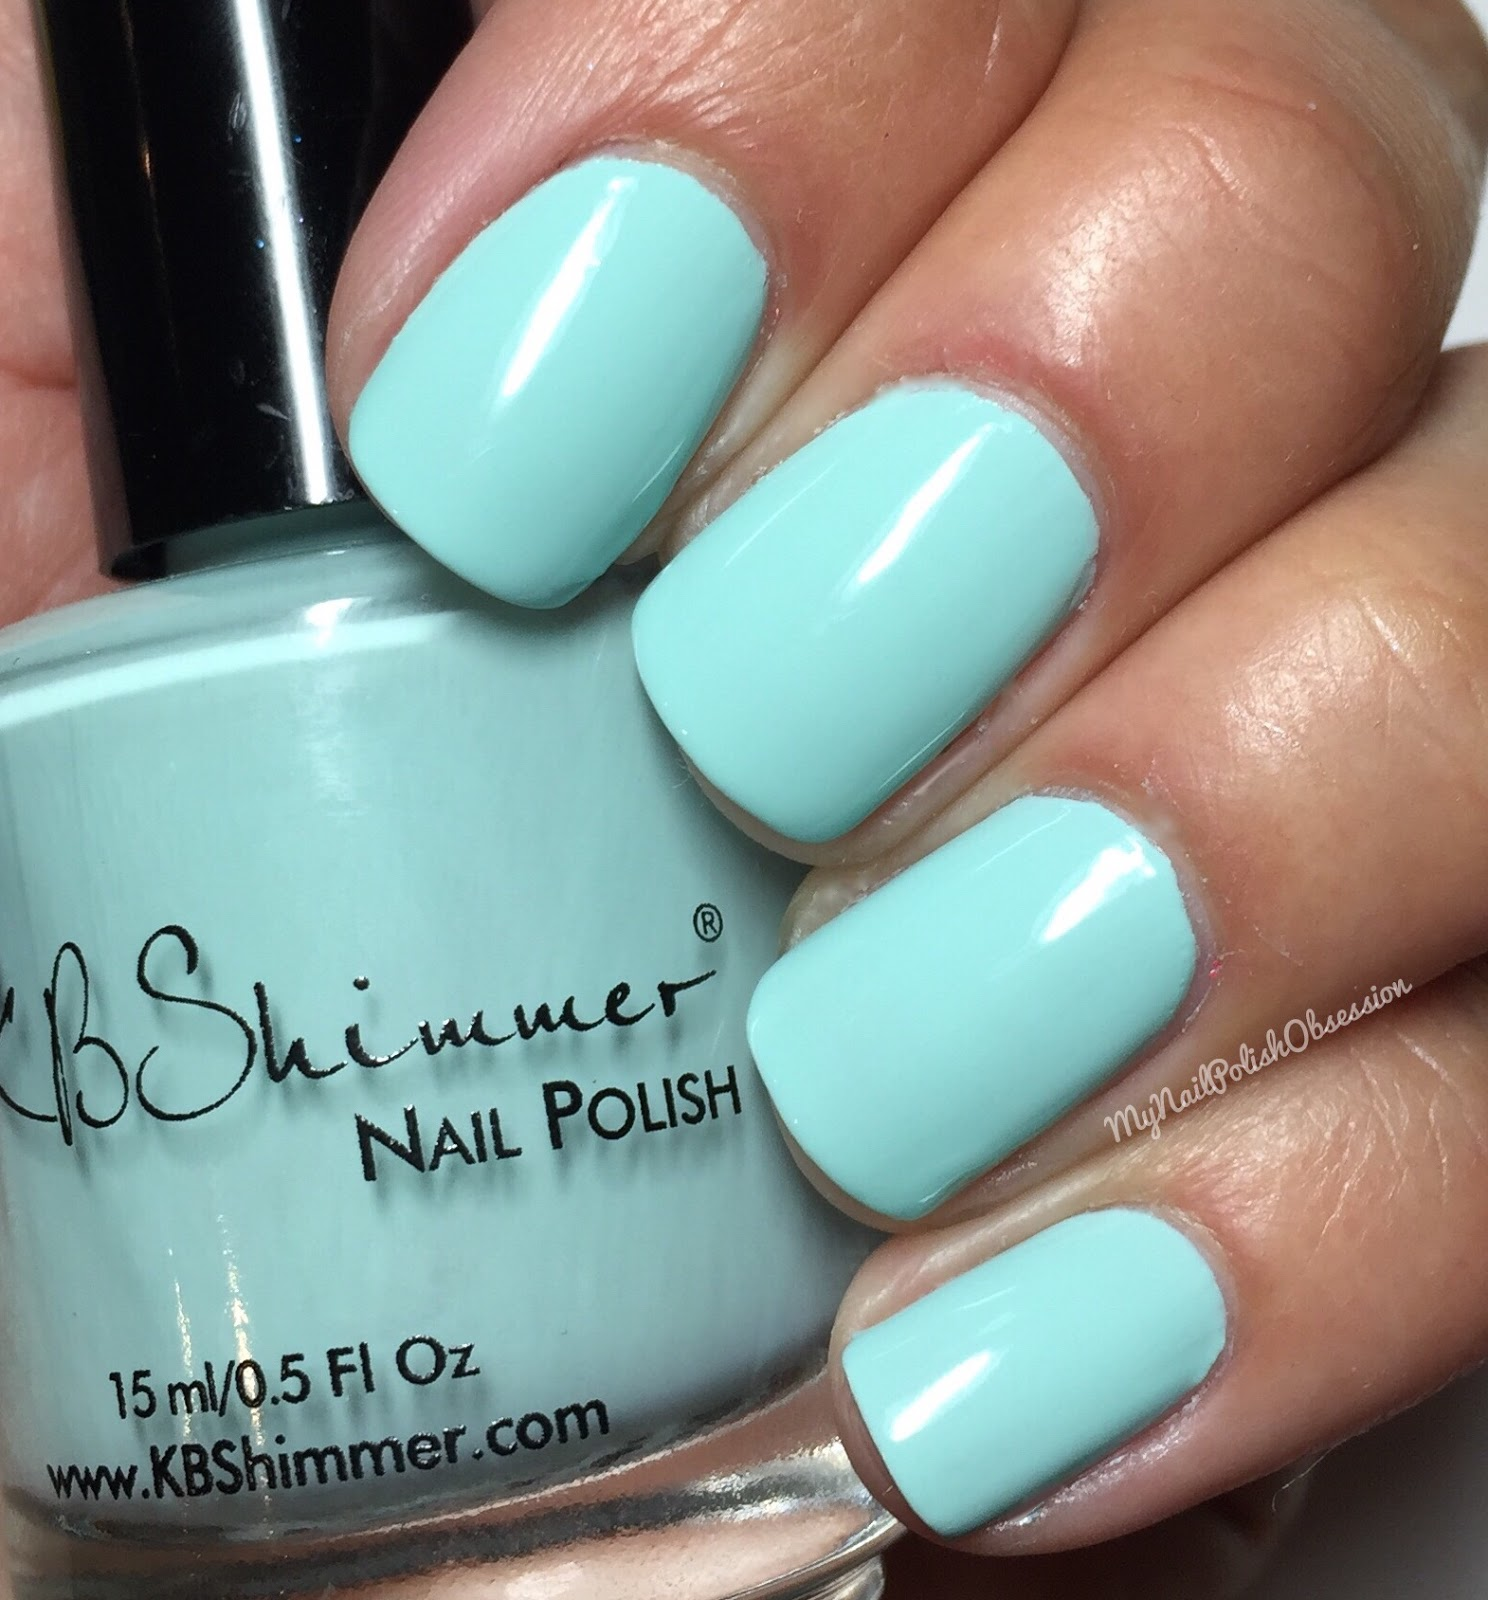 My Nail Polish Obsession: KBShimmer Summer 2016